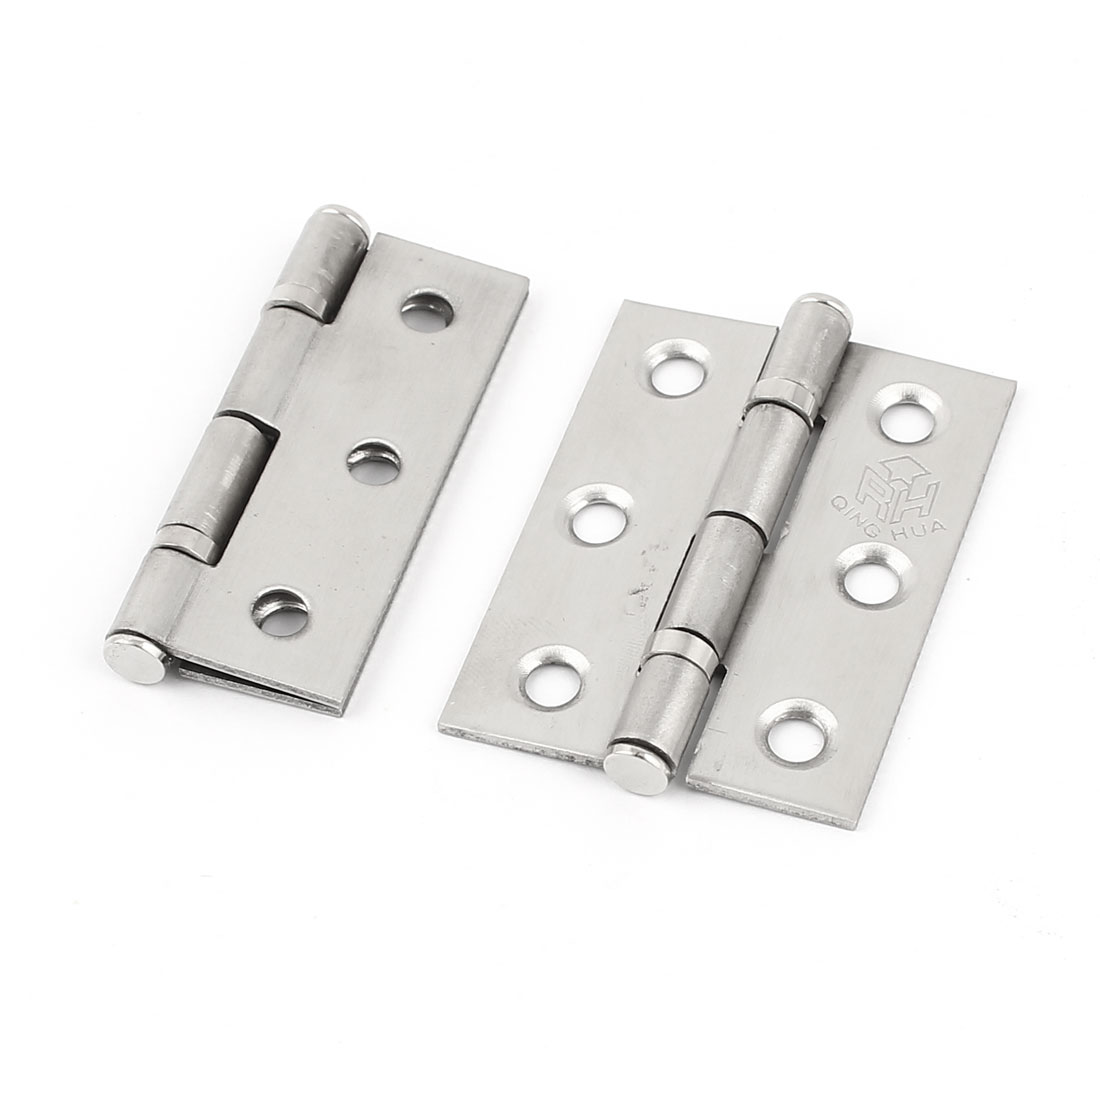 "2 Pieces Hardware 50mm 2"" Long Metal Butt Hinge Silver Tone for Home Drawer Door"